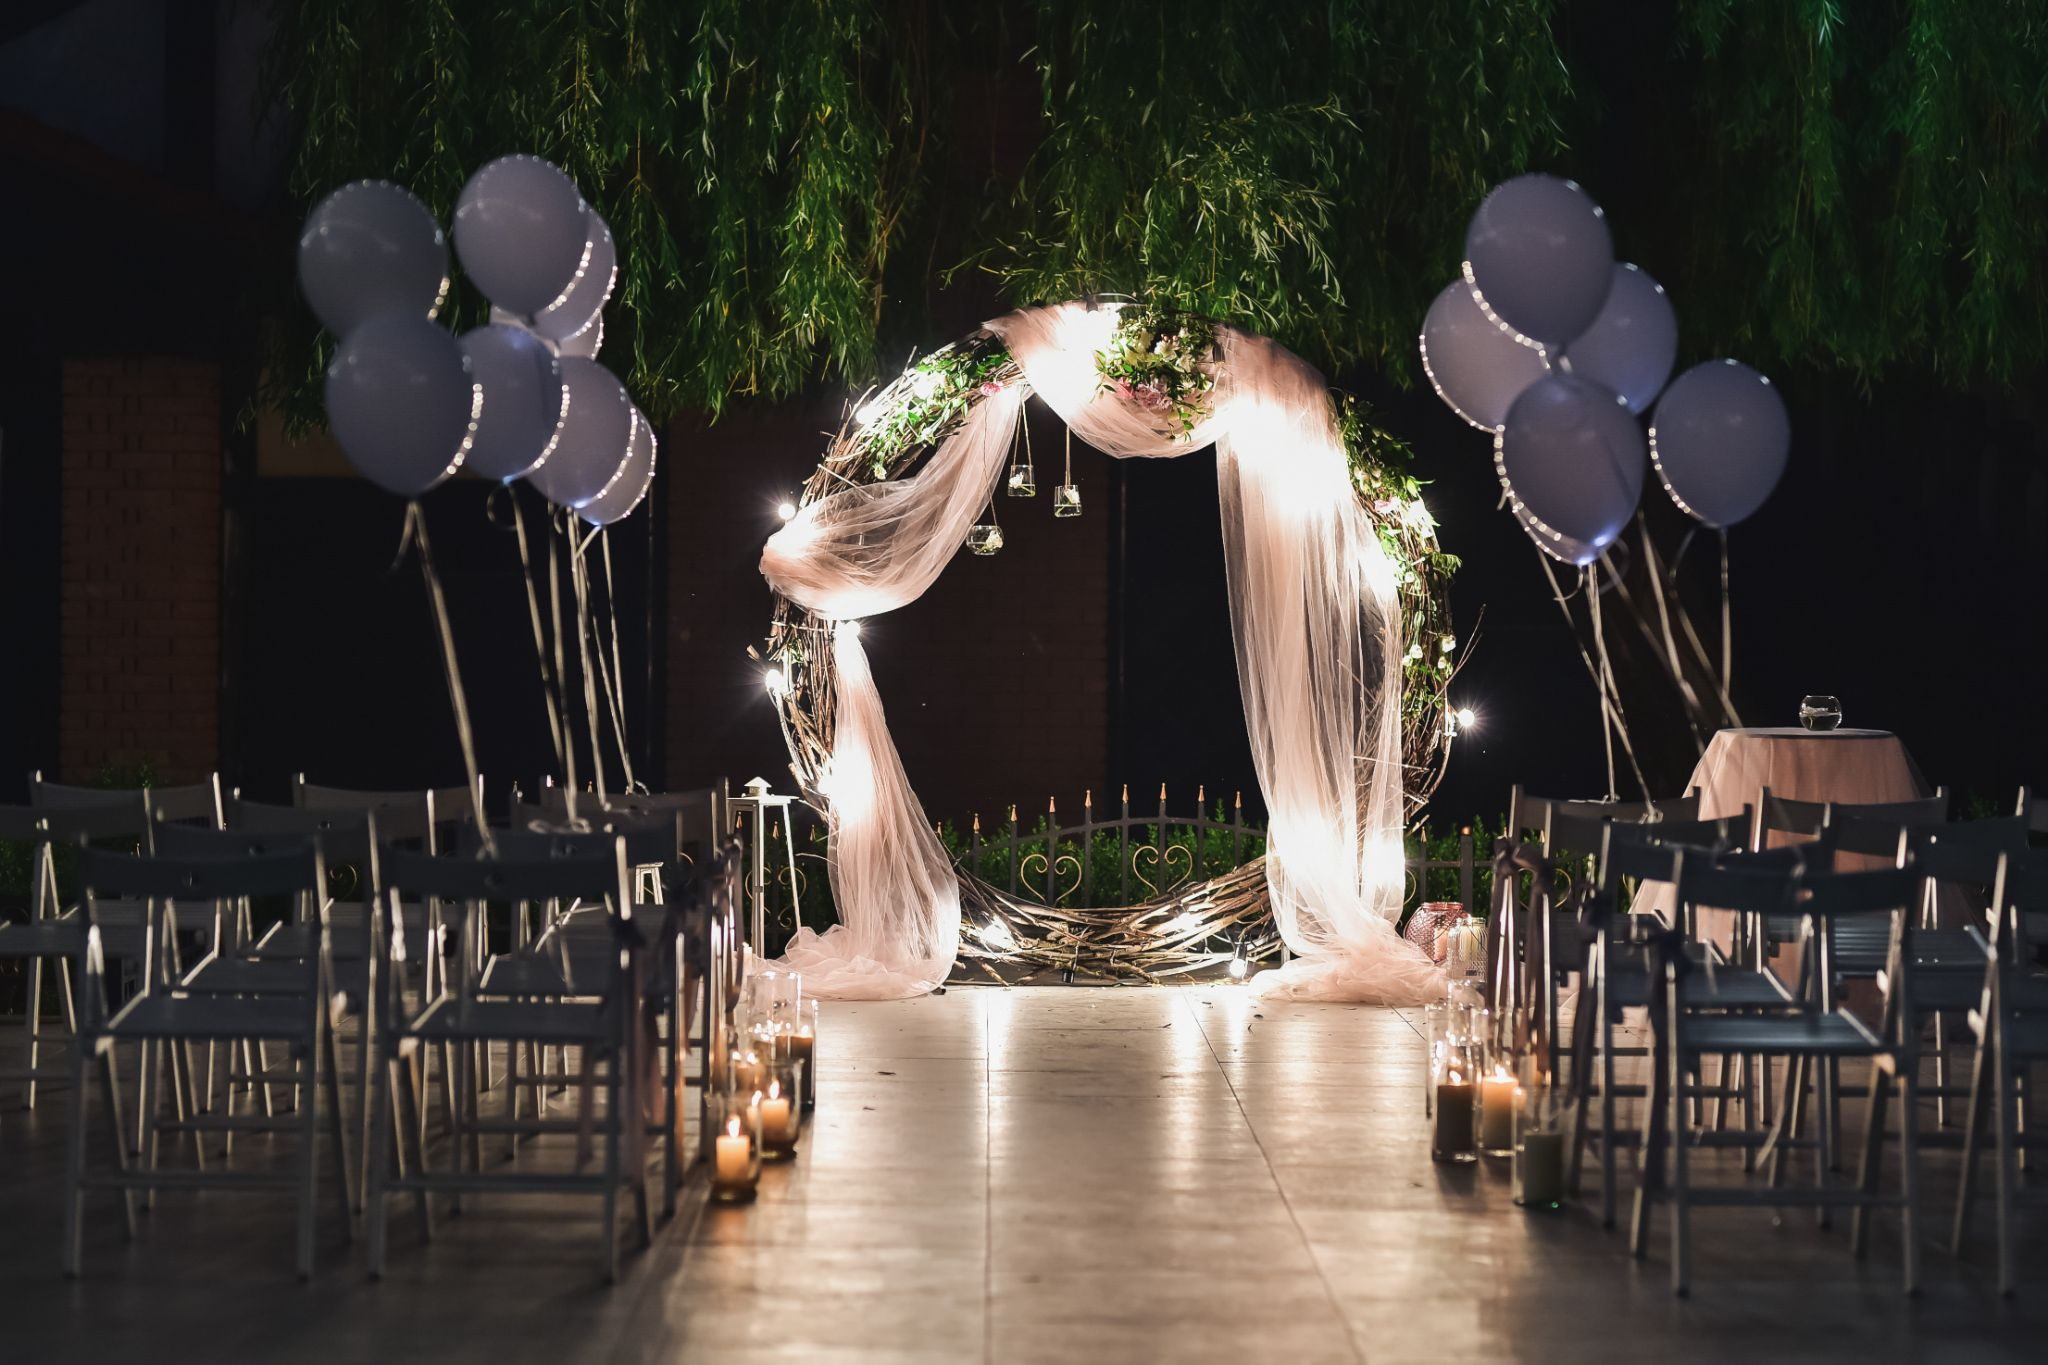 A work of an event planning company